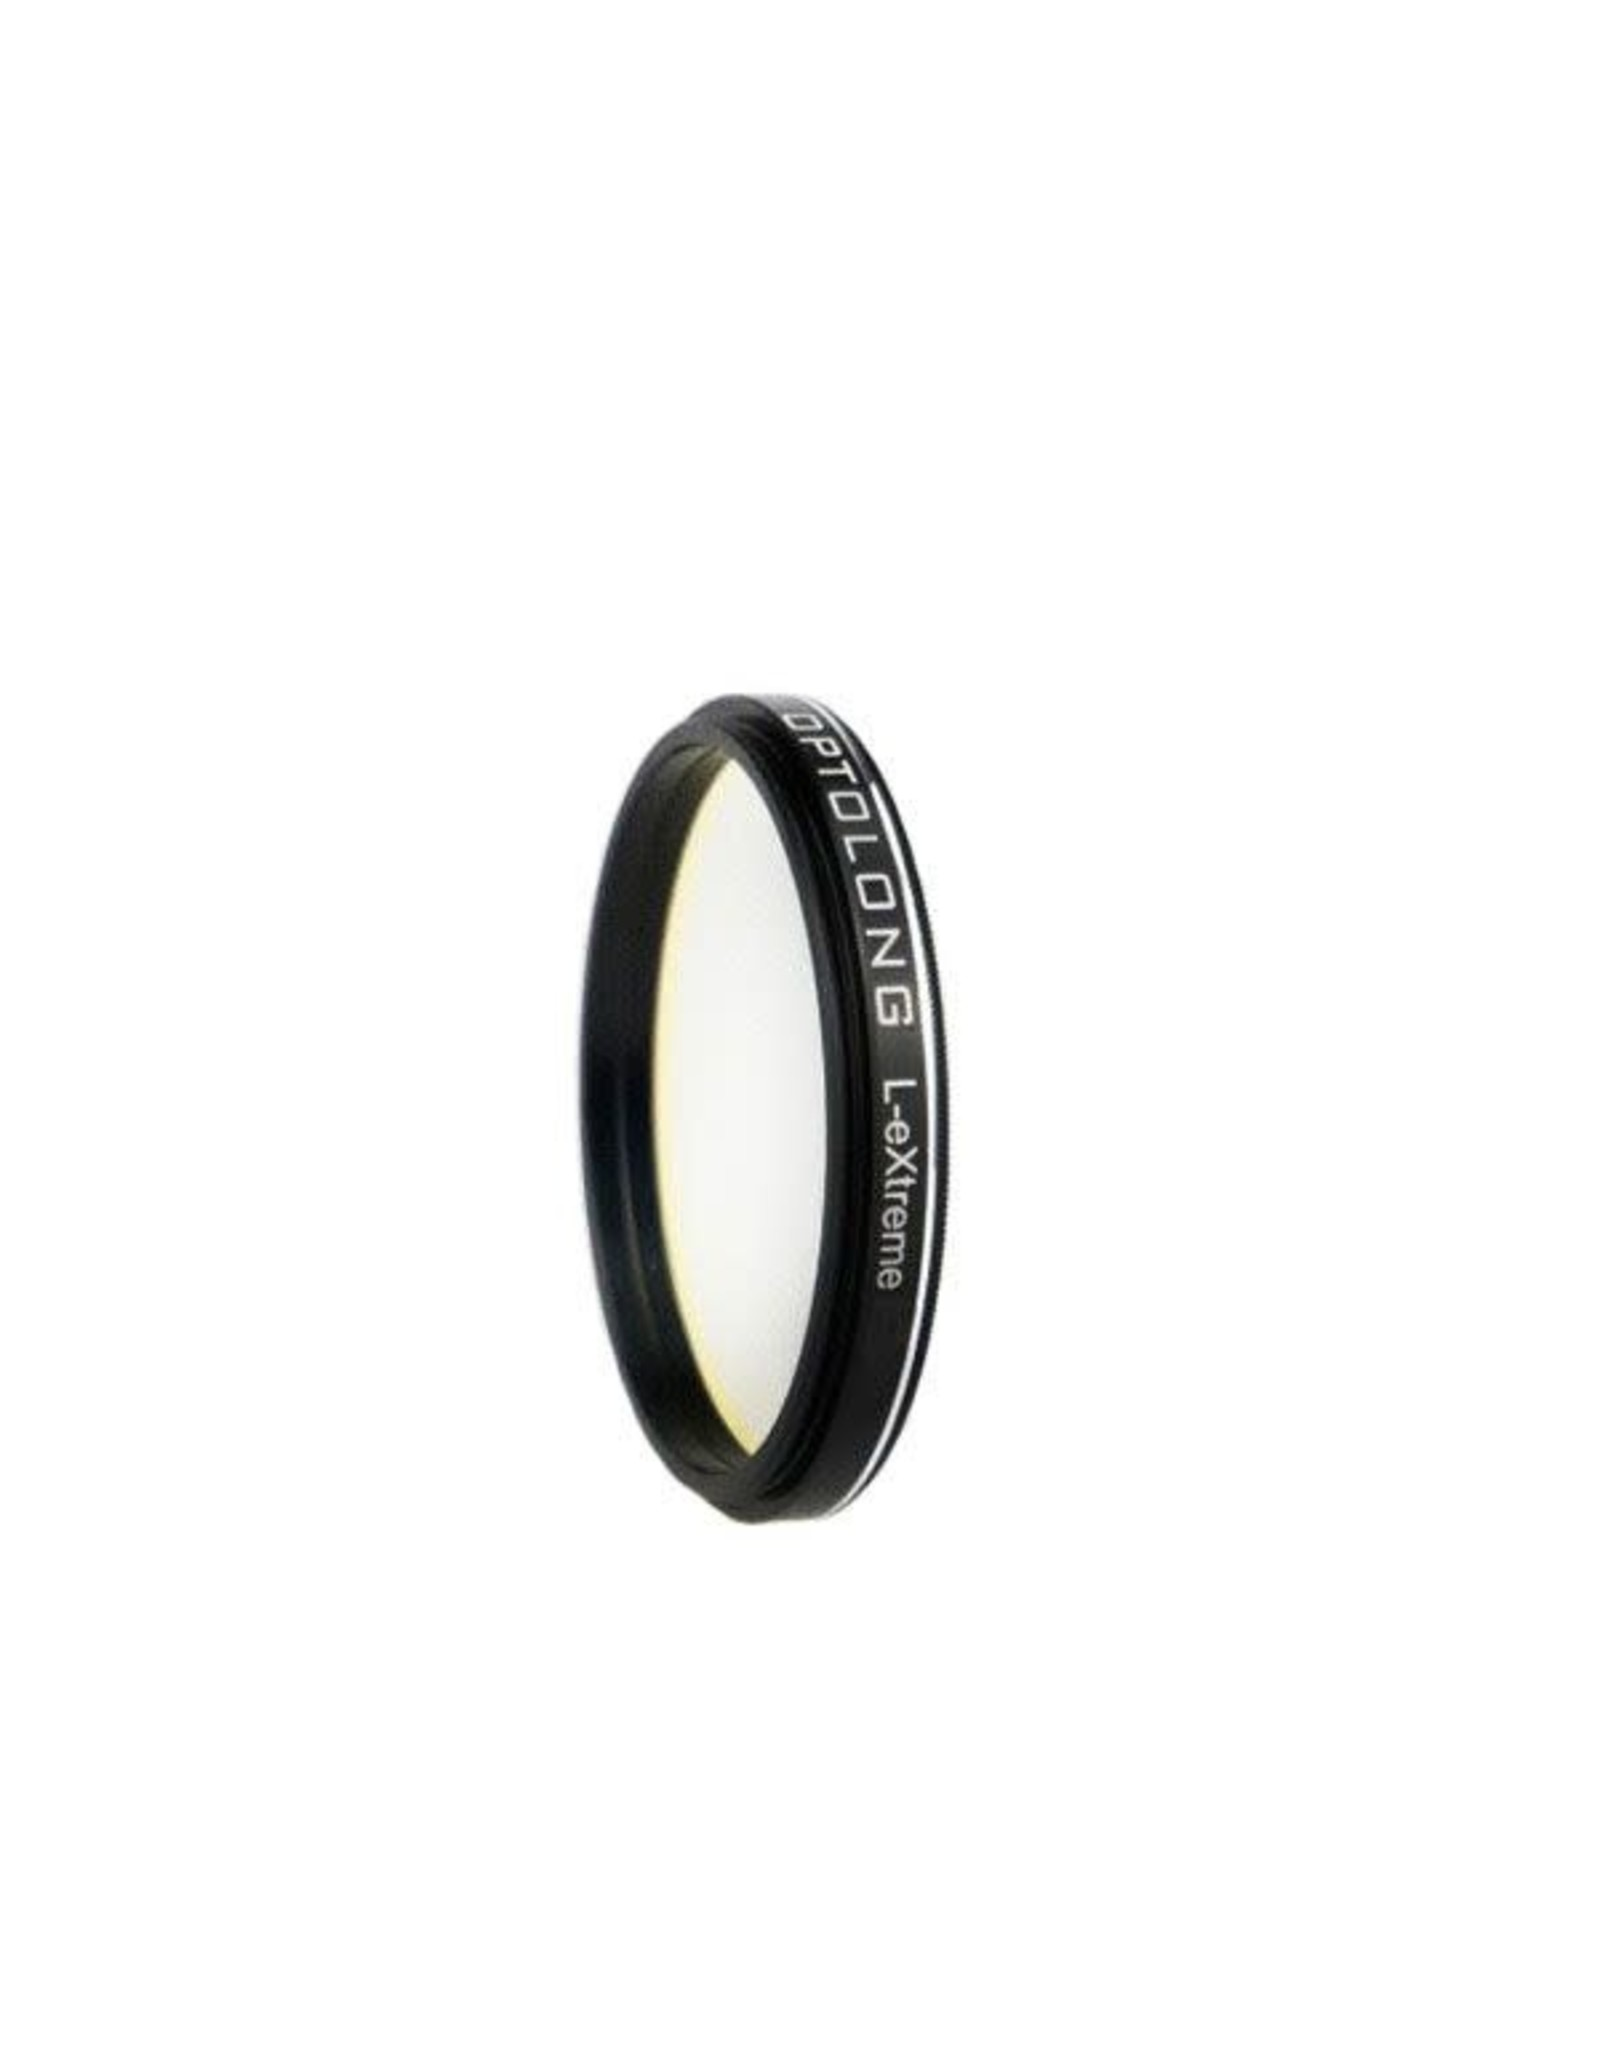 "Optolong Optolong 1.25"" L-eXtreme Dual Band 7nm HA/OIII Filter - LXT-125"